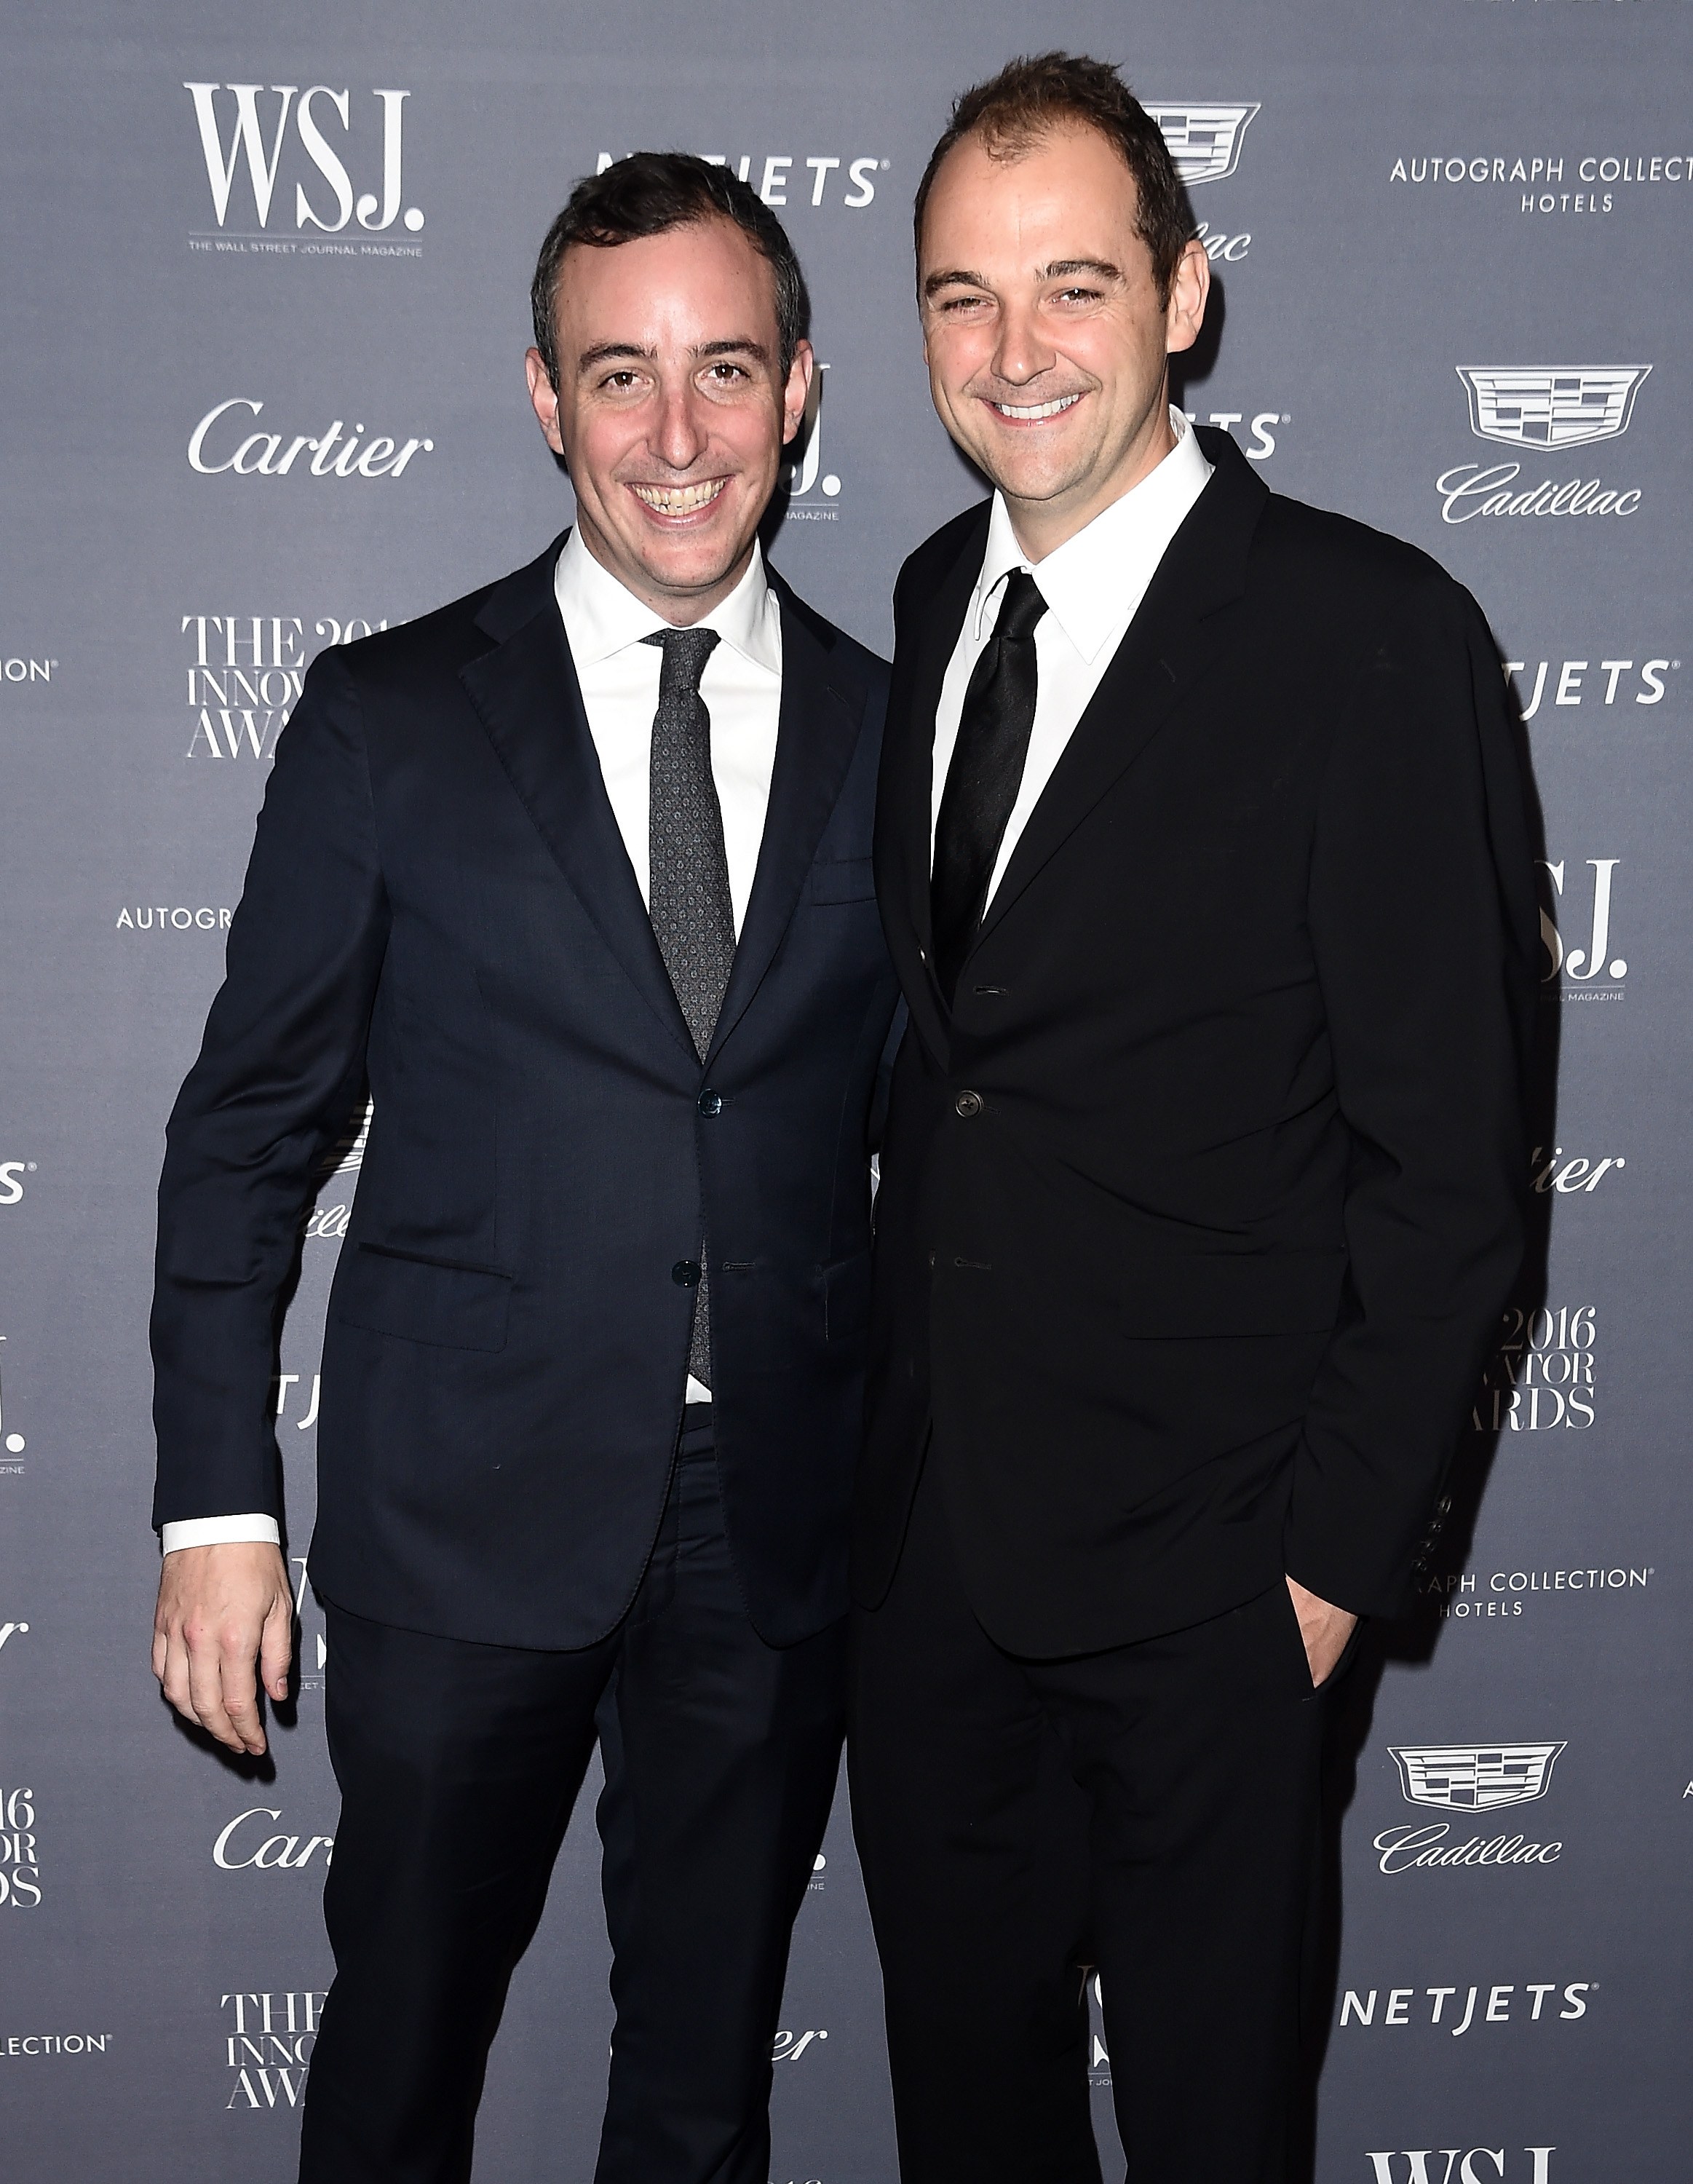 Eleven Madison Park's Daniel Humm and Will Guidara, wearing suits and smiling, standing in front of a step and repeat sign at a party